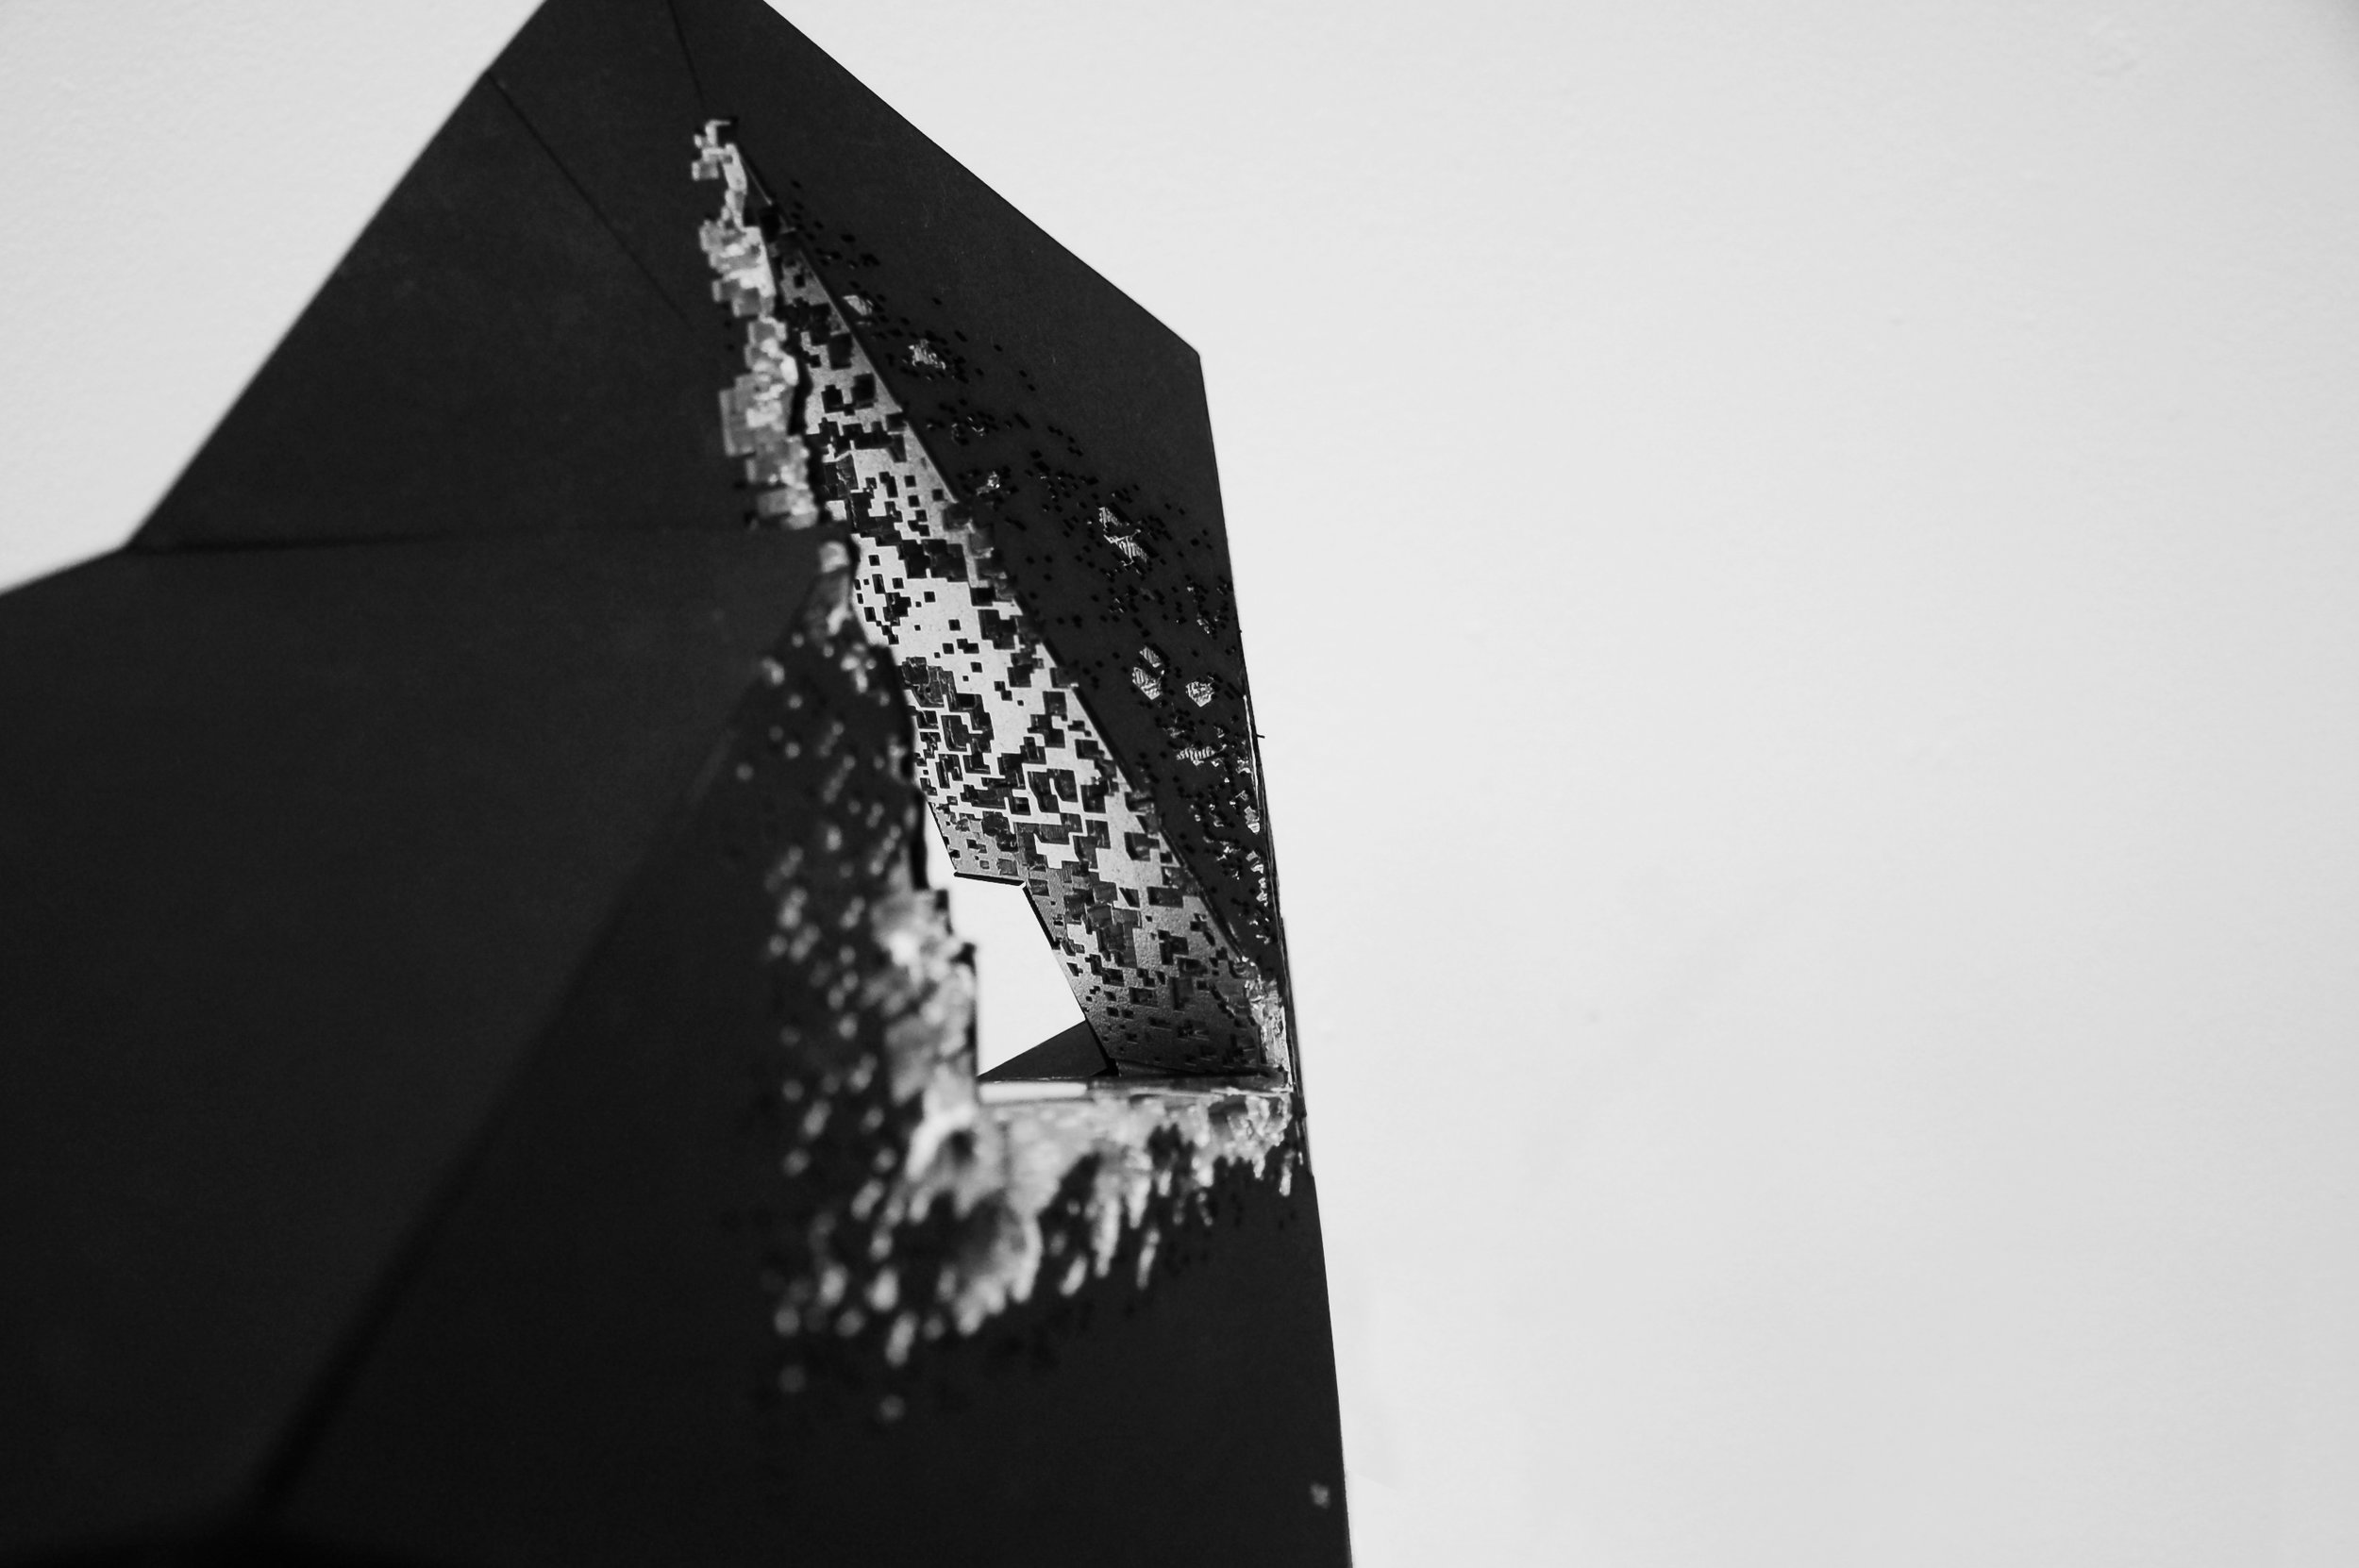 study model of the void and erosions